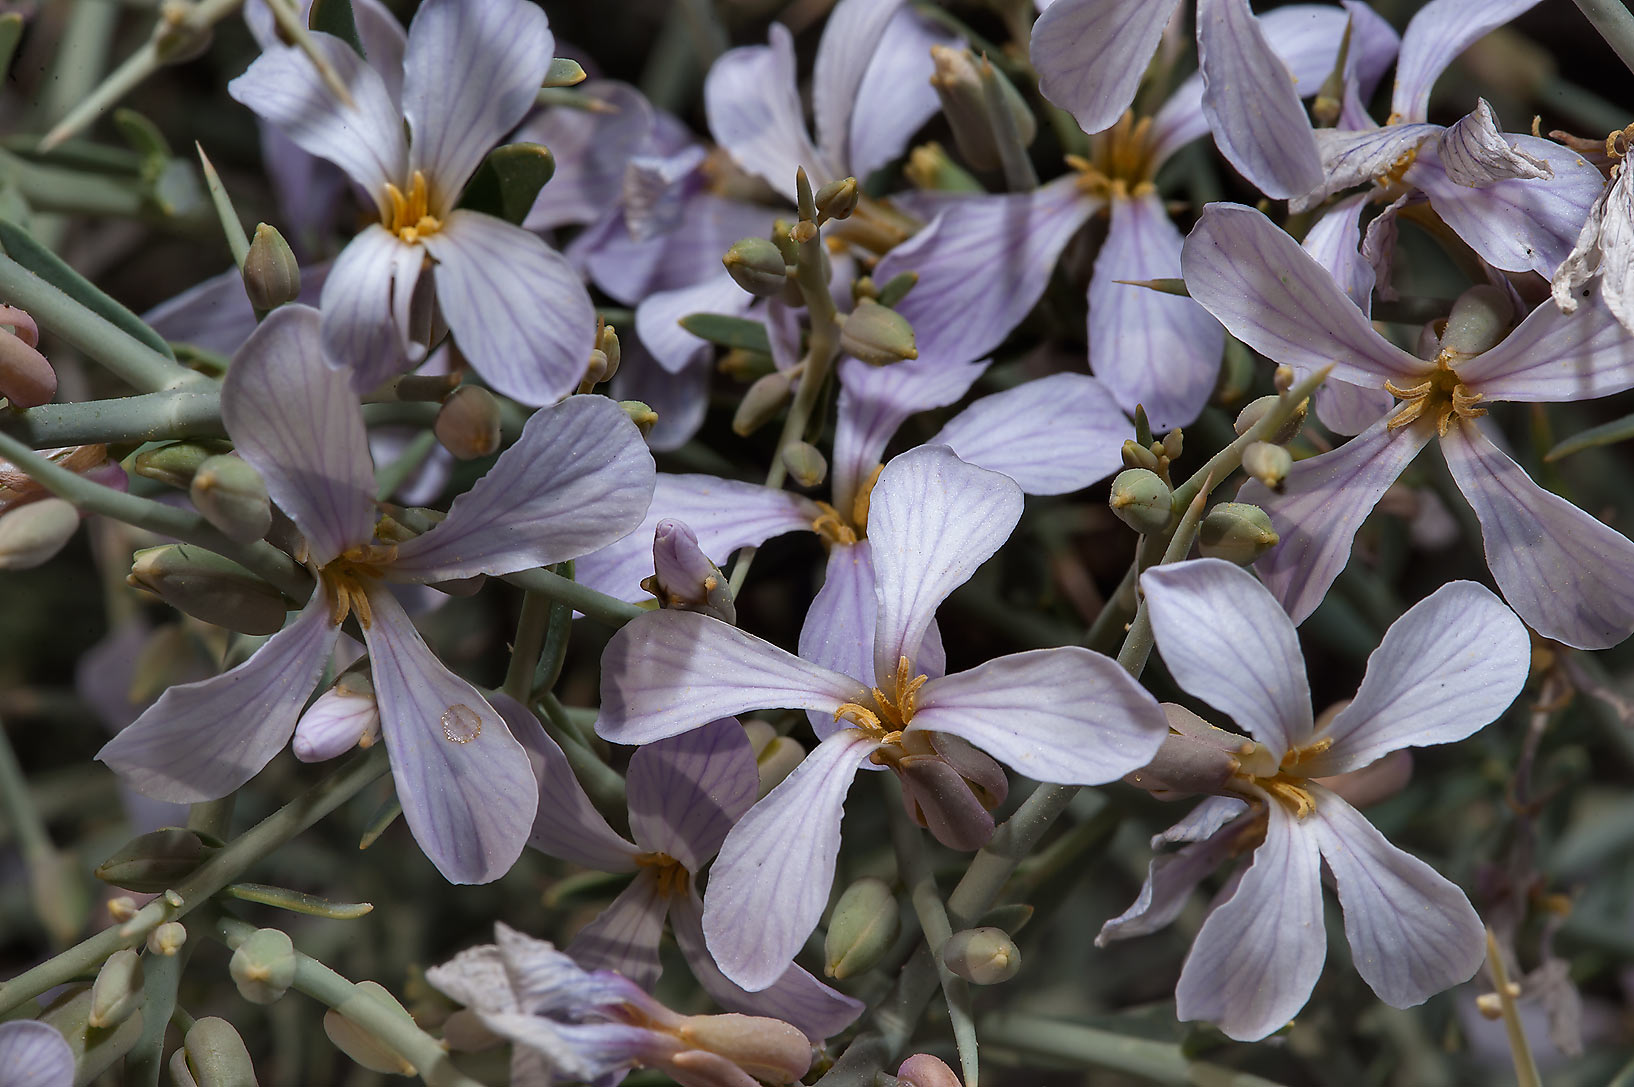 Dense flowers of Zilla spinosa (Bunias spinosa...of Abu Samra Rd. in southern Qatar